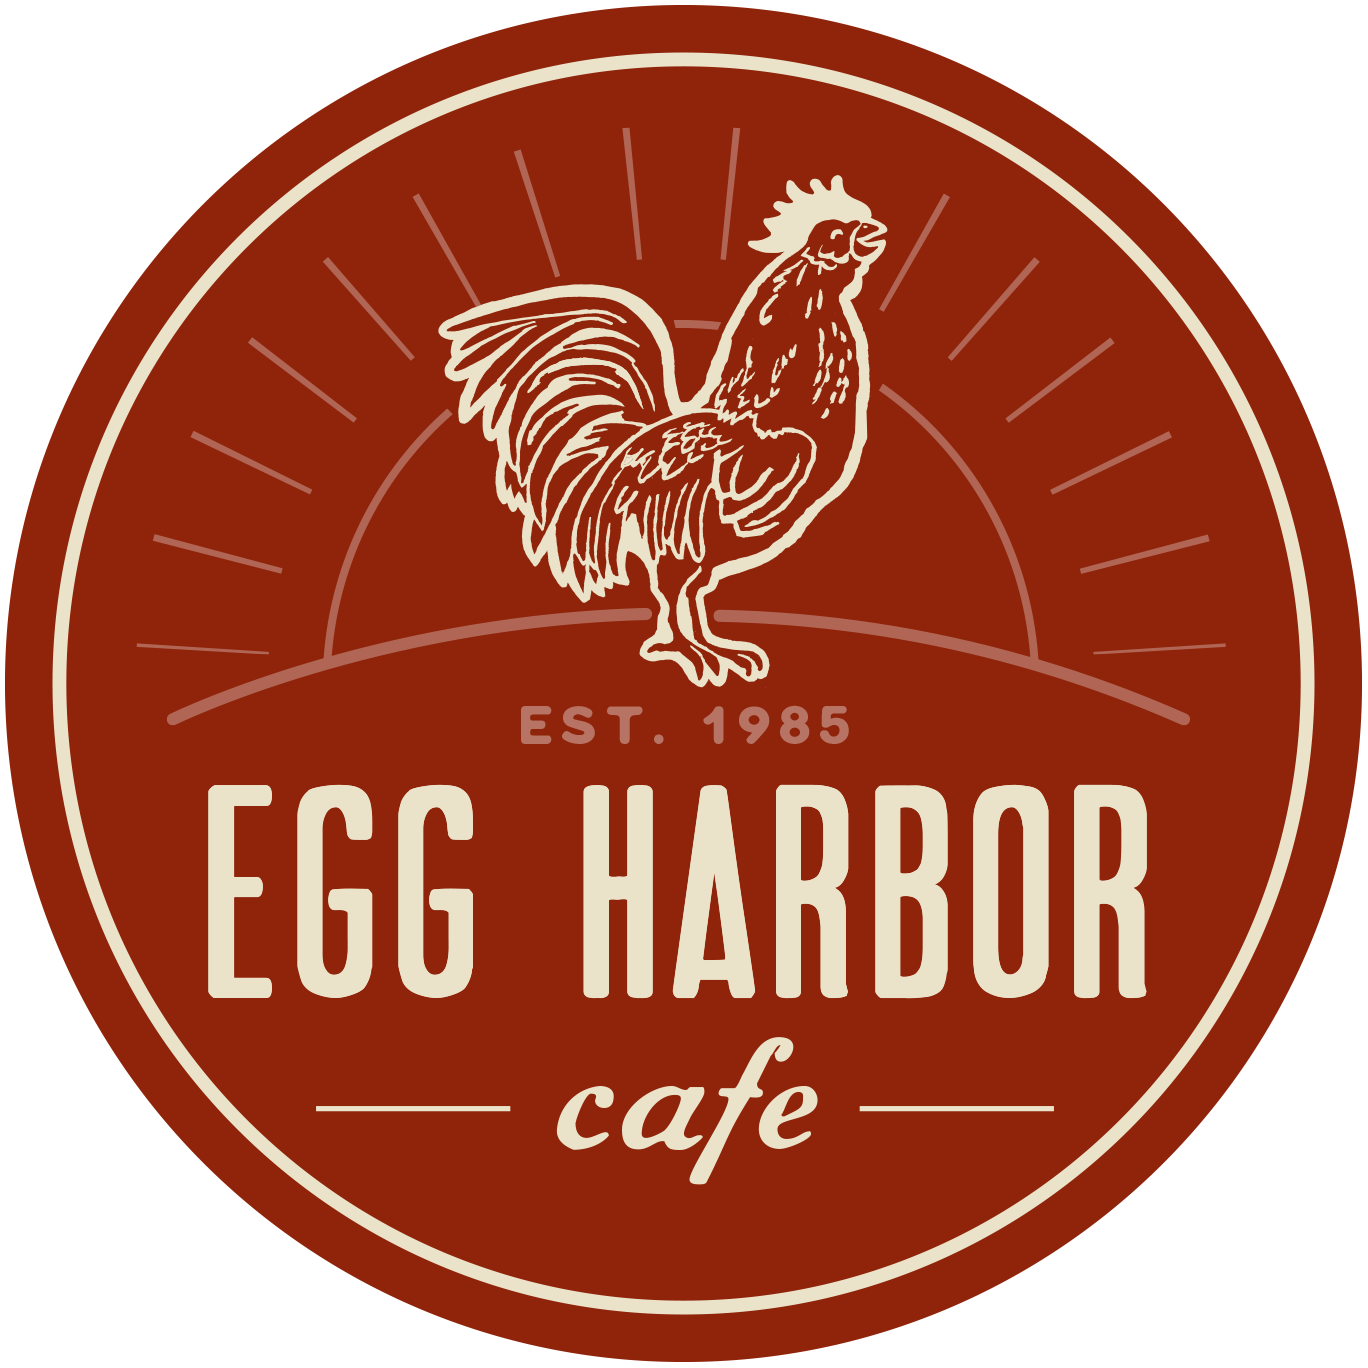 Egg Harbor Cafe